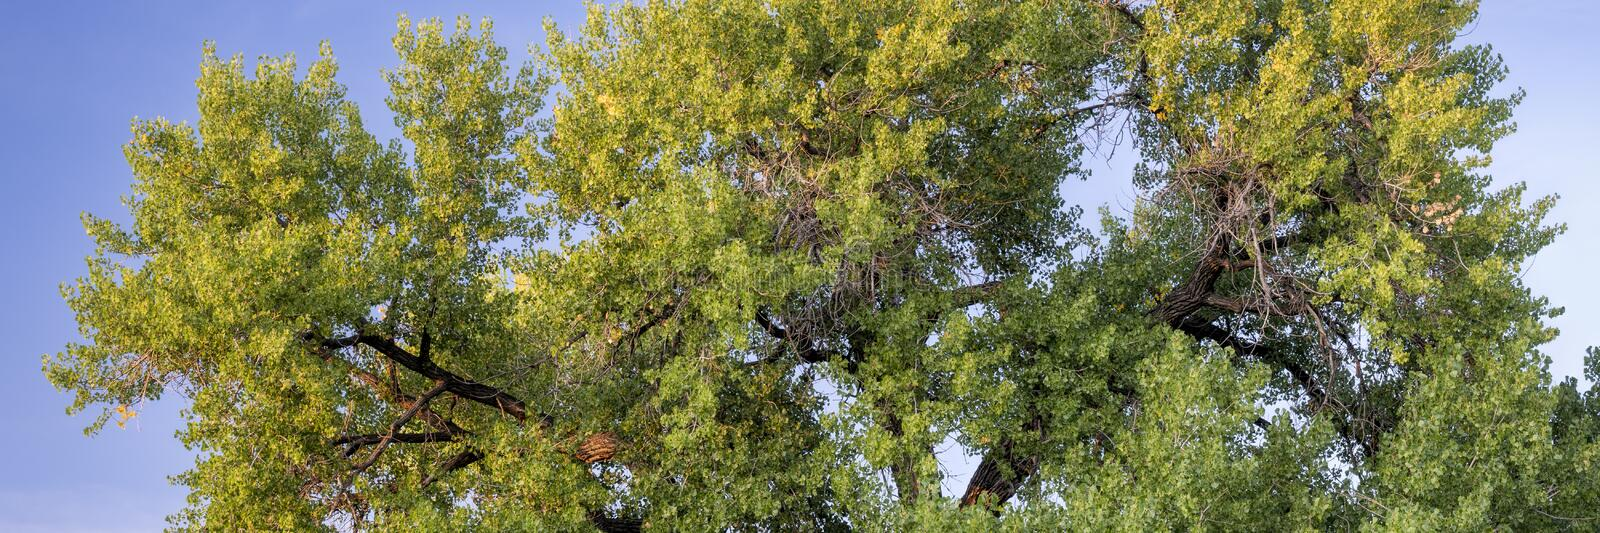 Giant cottonwood tree in early fall royalty free stock image